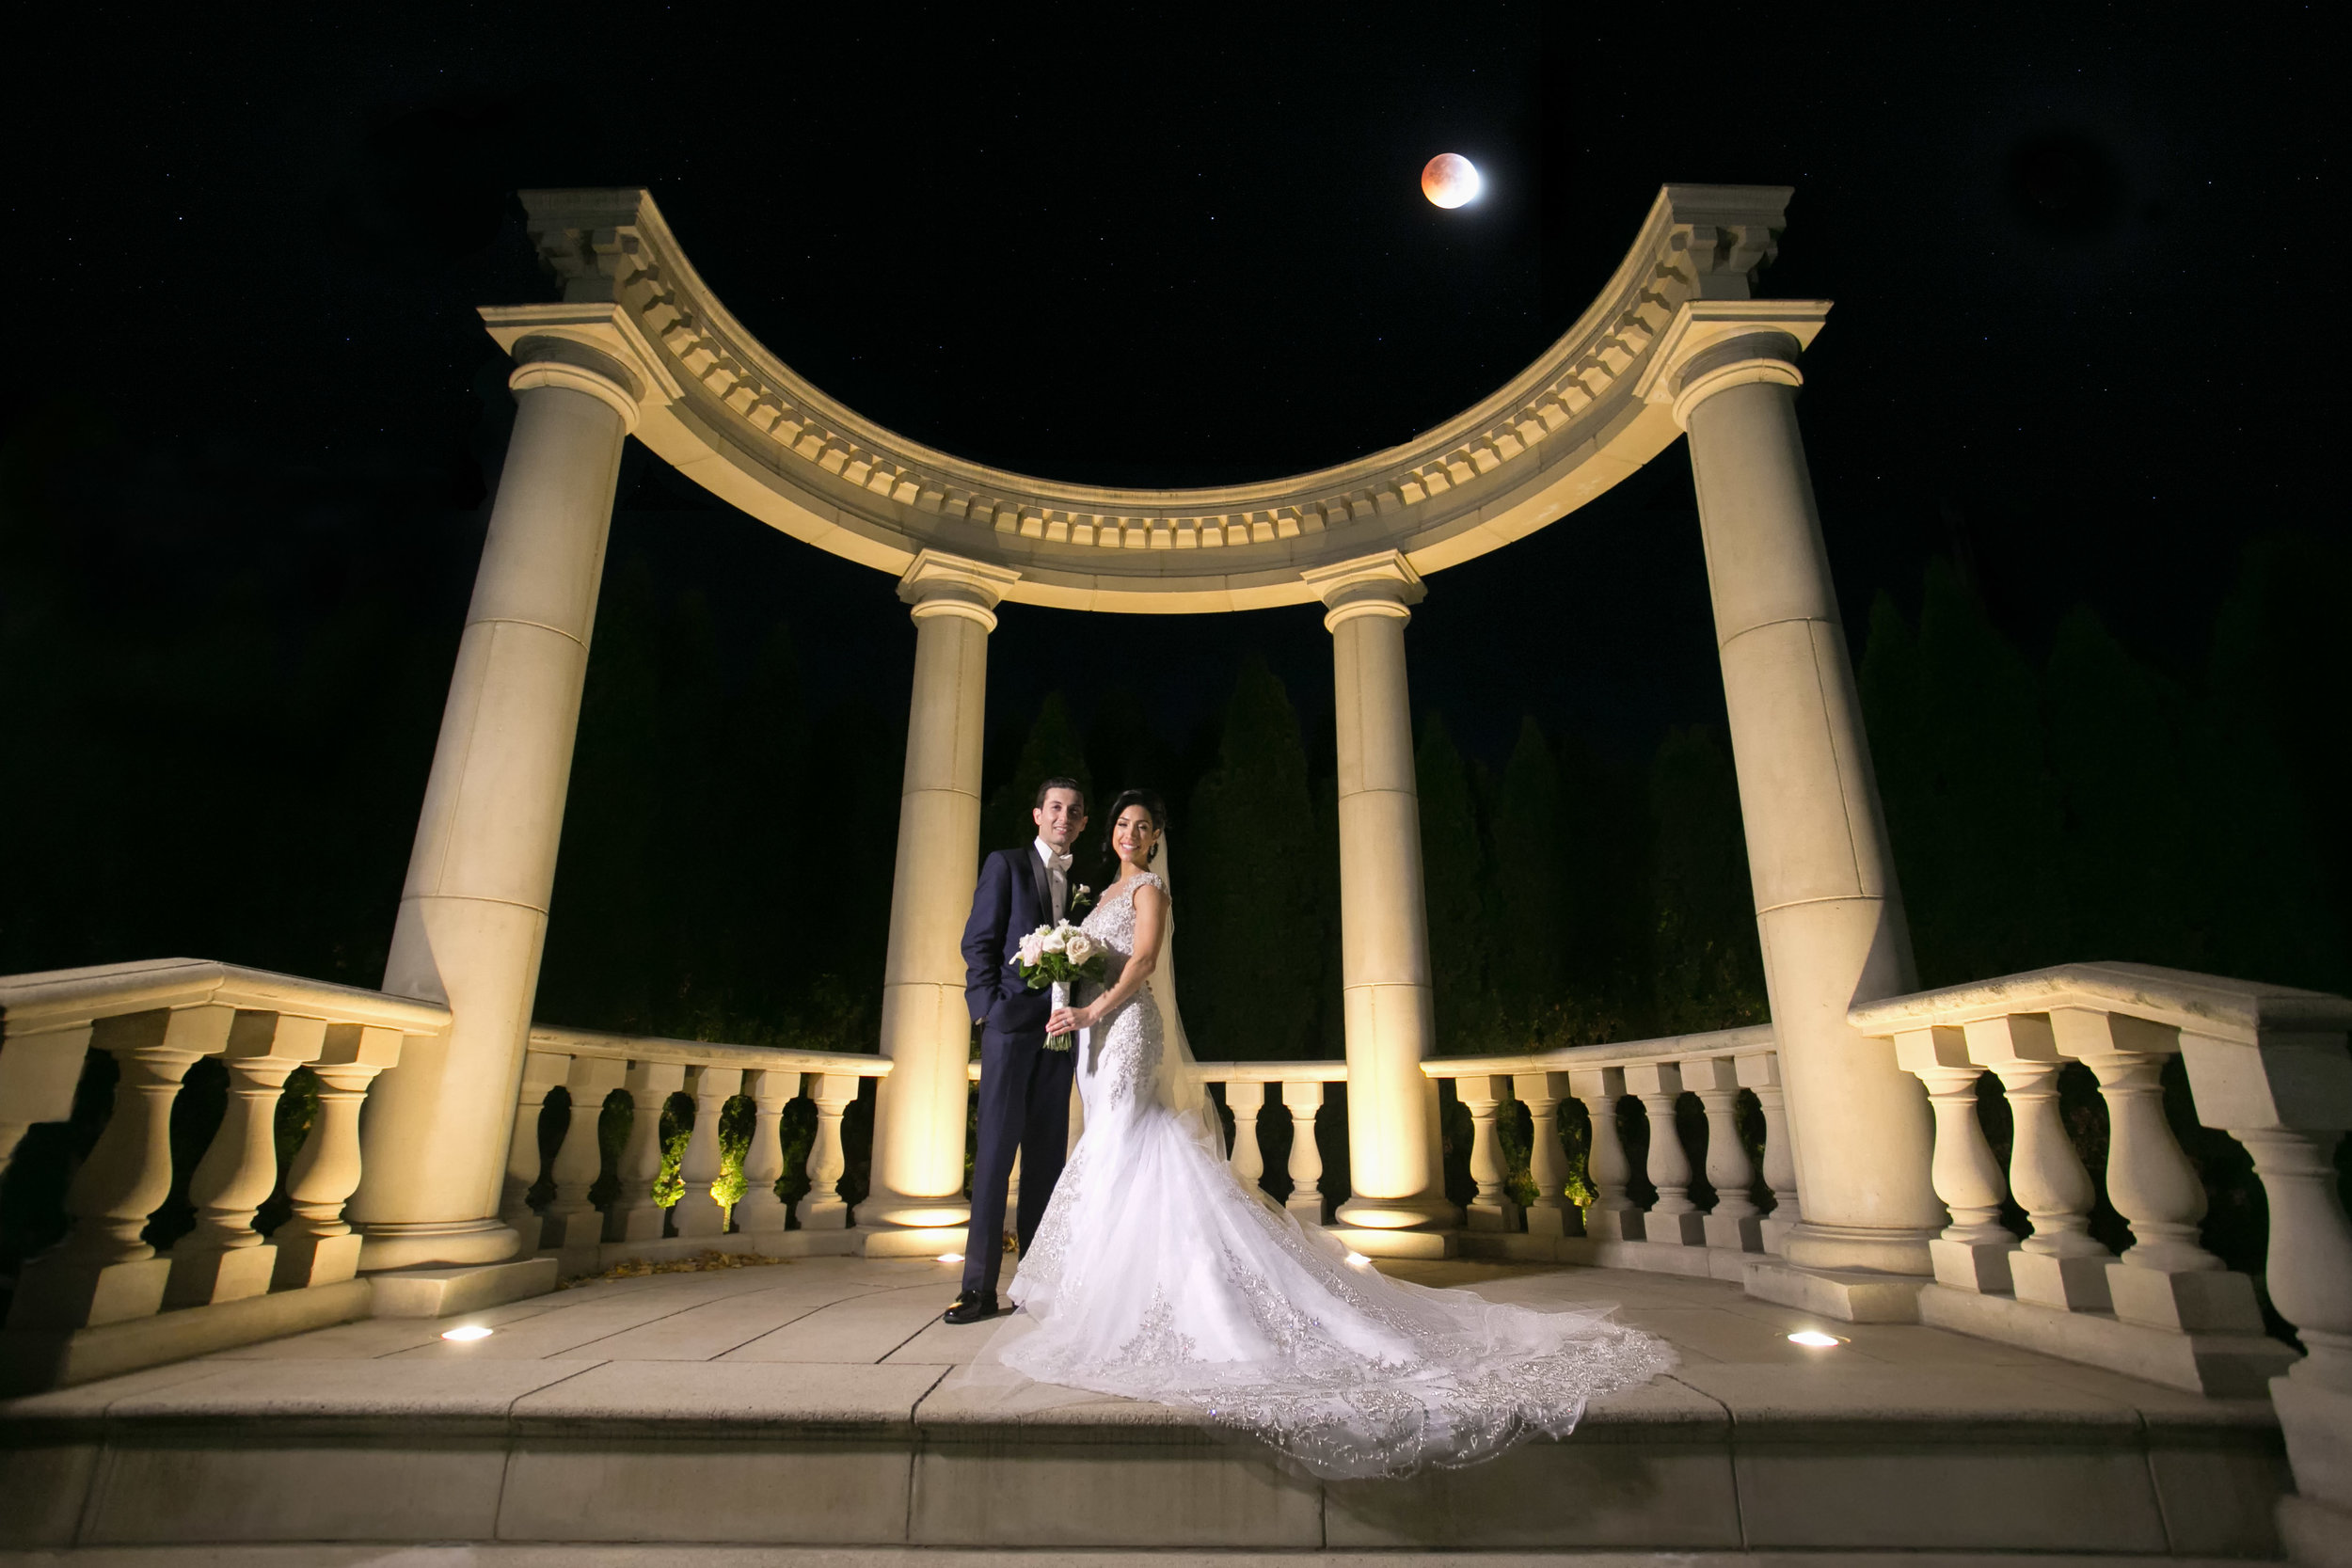 Bride and Groom standing under a blood moon under marble columns.